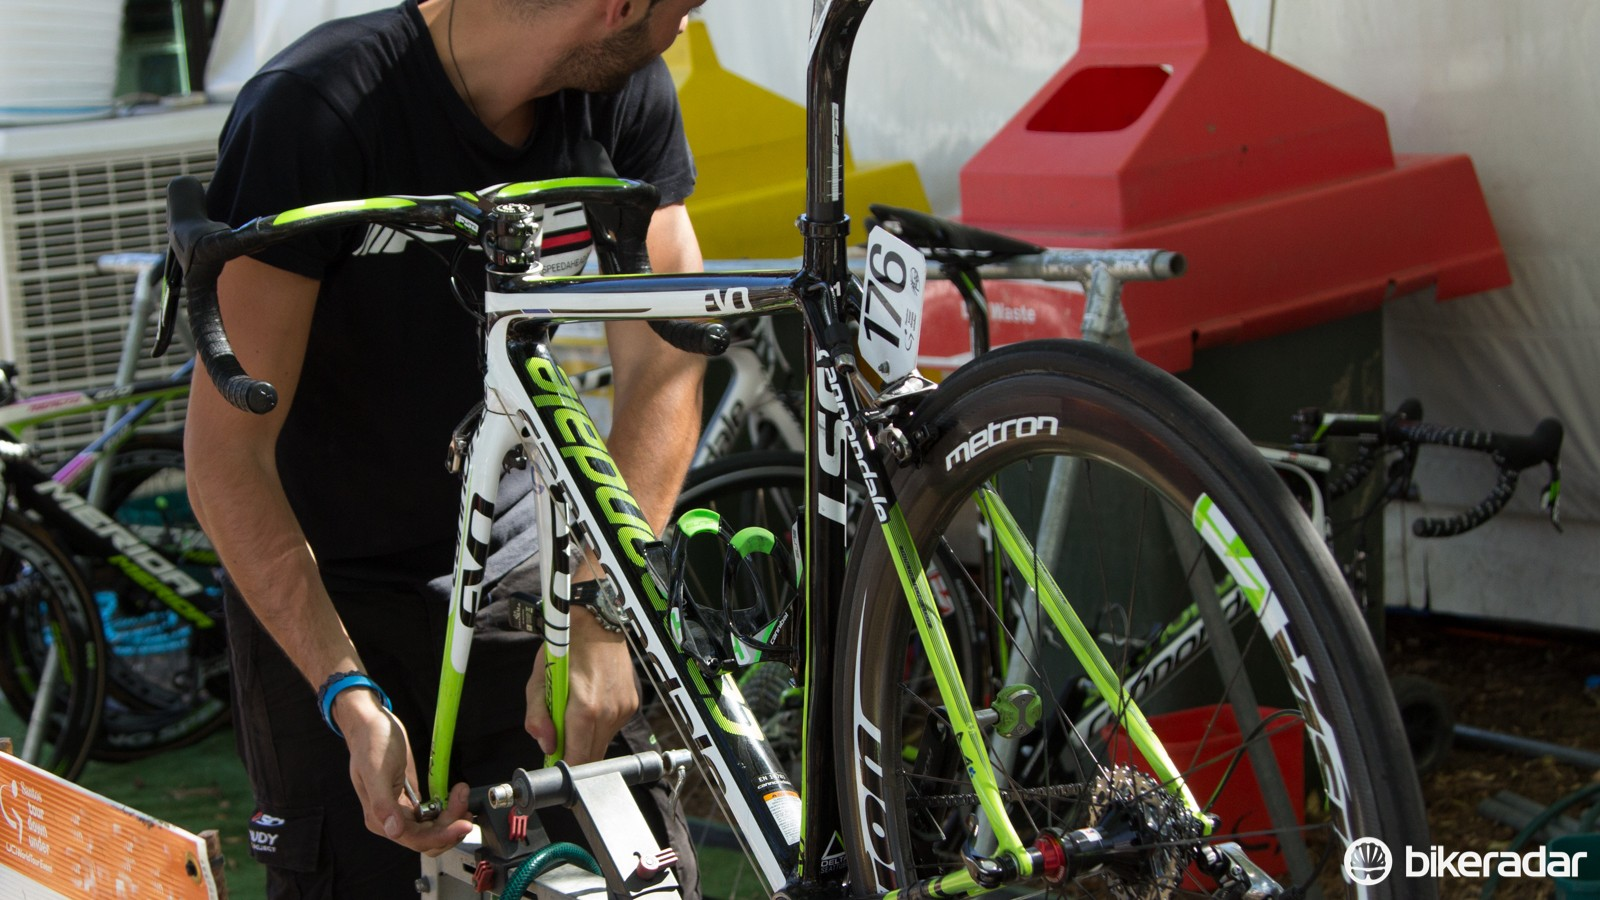 Road bikes are relatively simple to keep purring, just be sure to keep on top of your maintenance